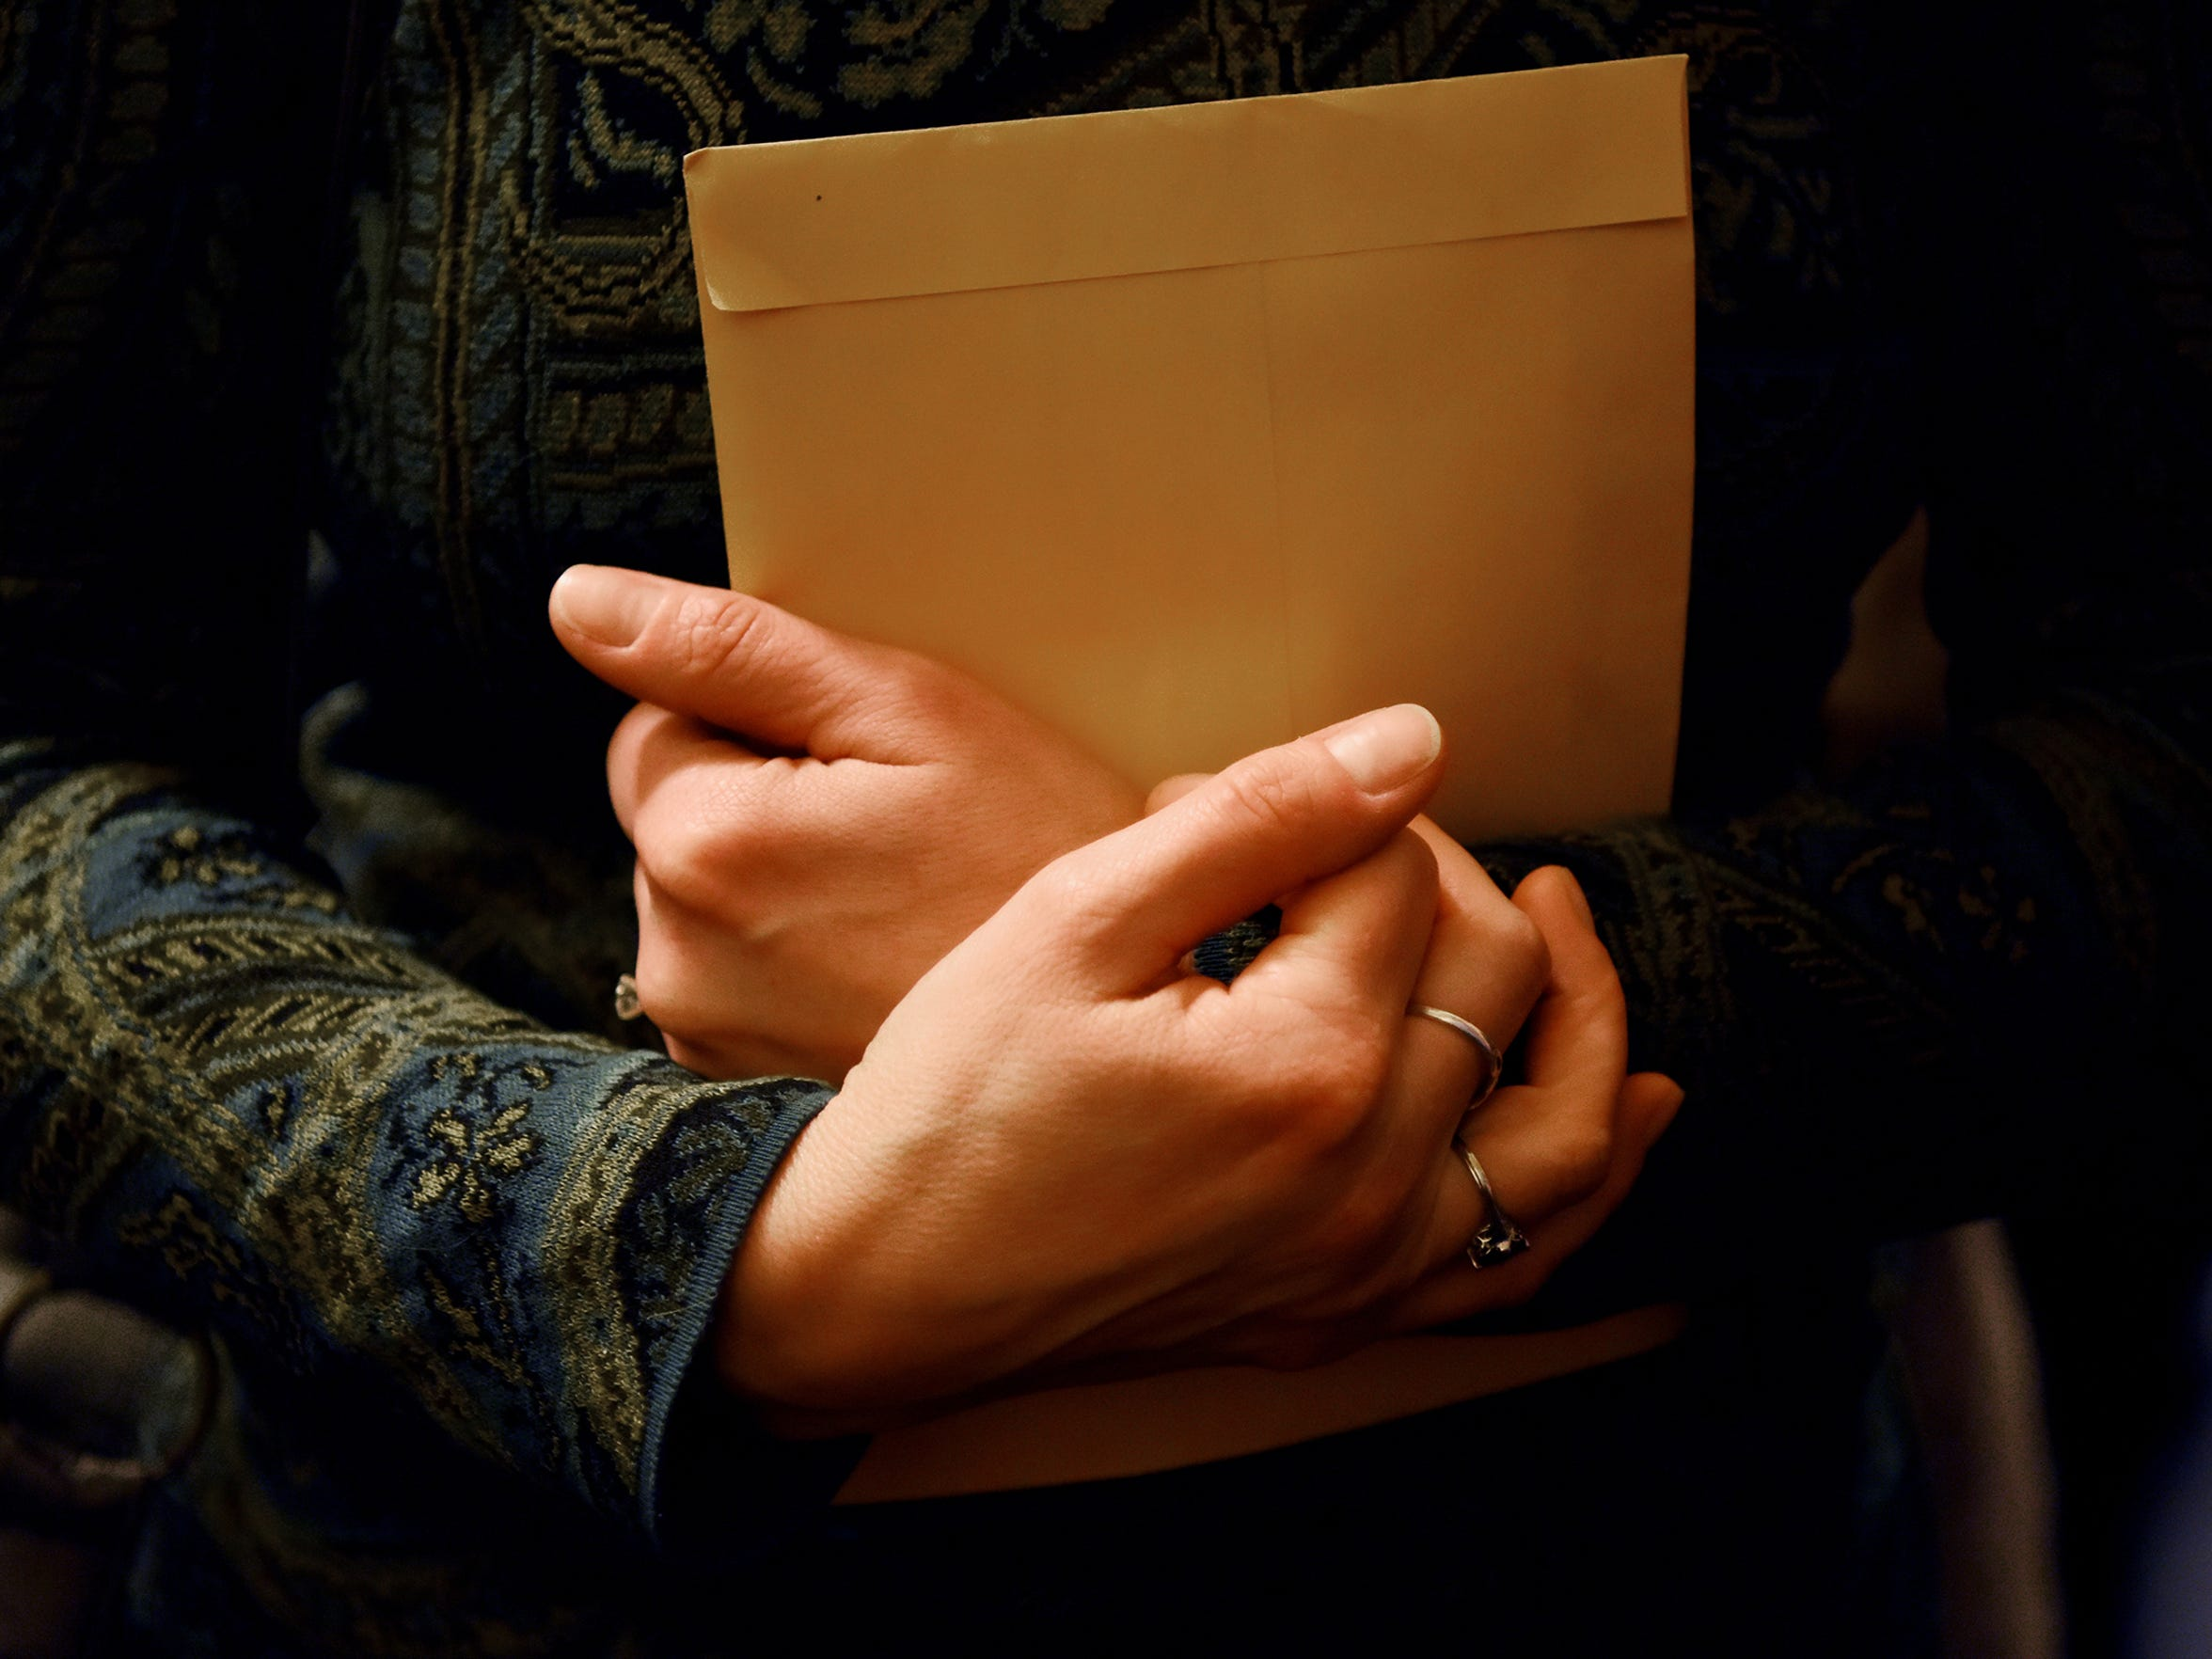 Adoptee Theresa Carroll of East Islip, NY clutches and envelope containing her just received birth certificate.